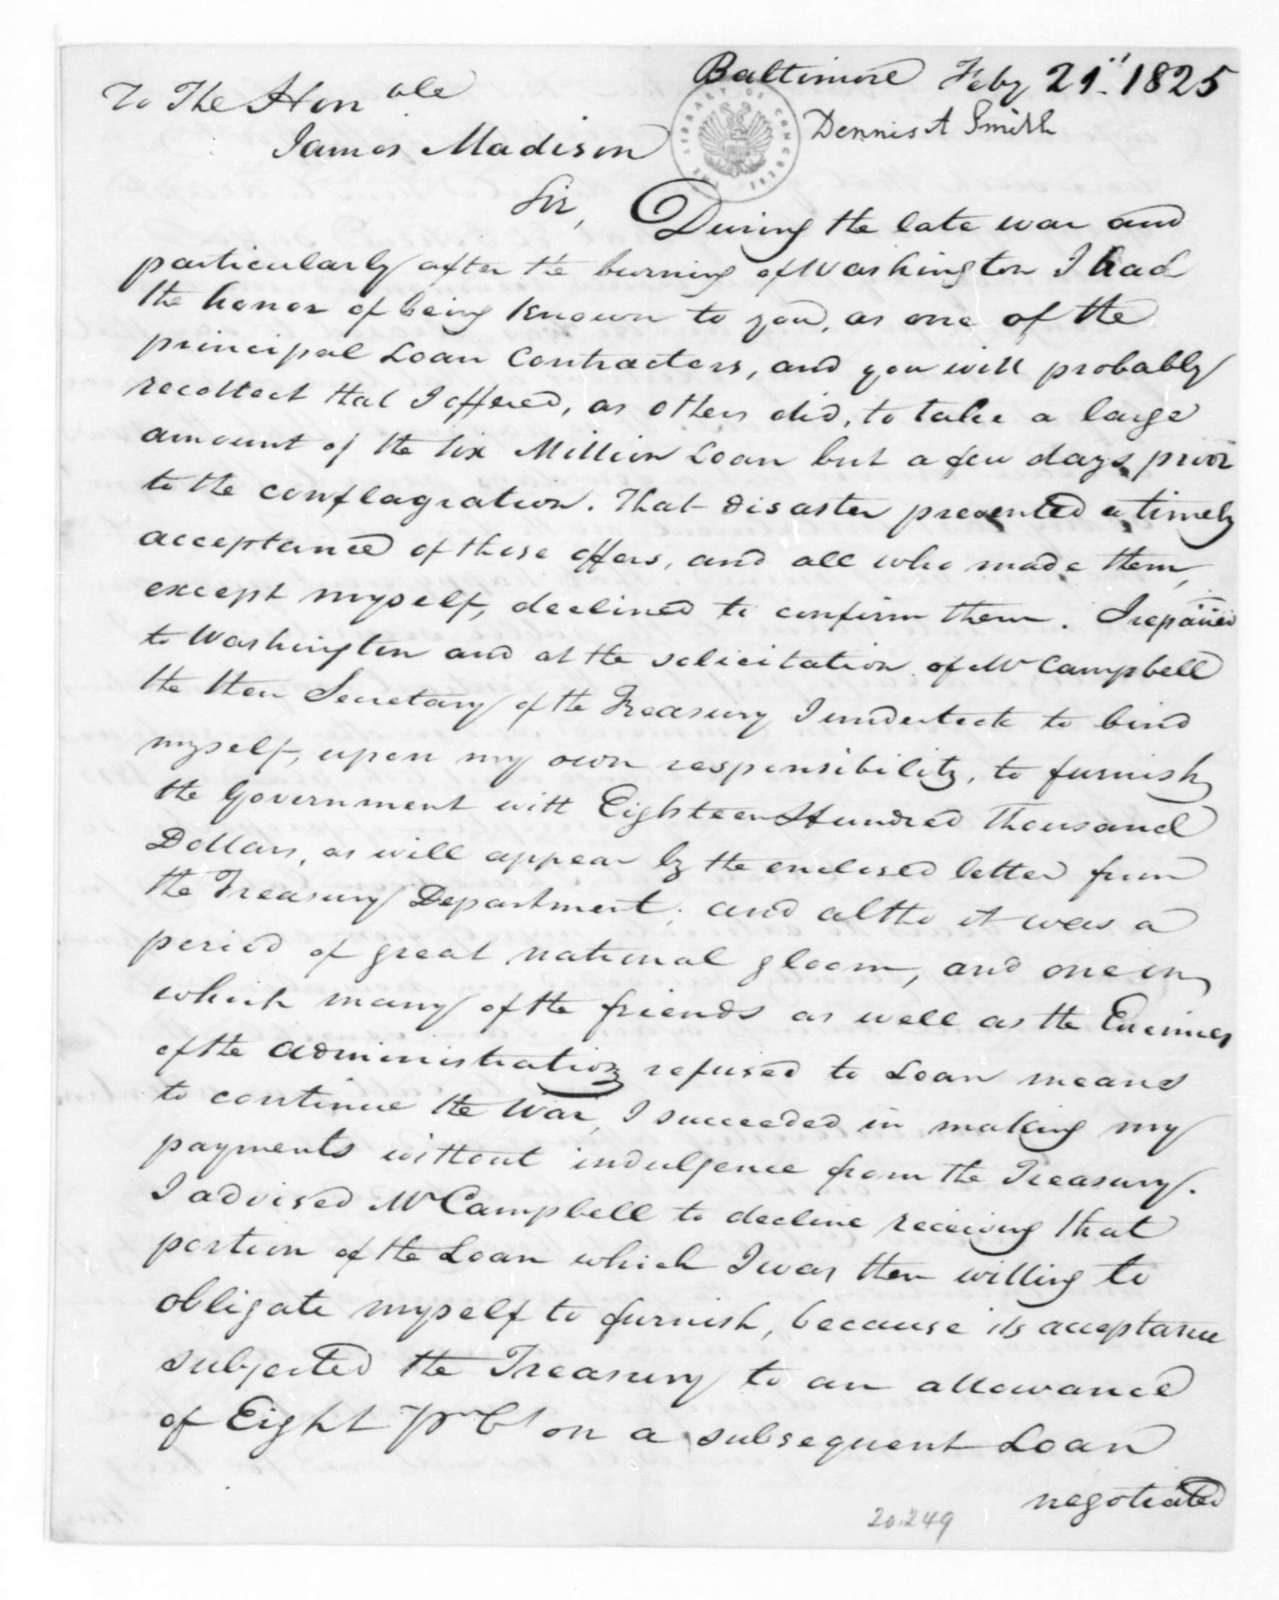 Dennis A. Smith to James Madison, February 21, 1825.